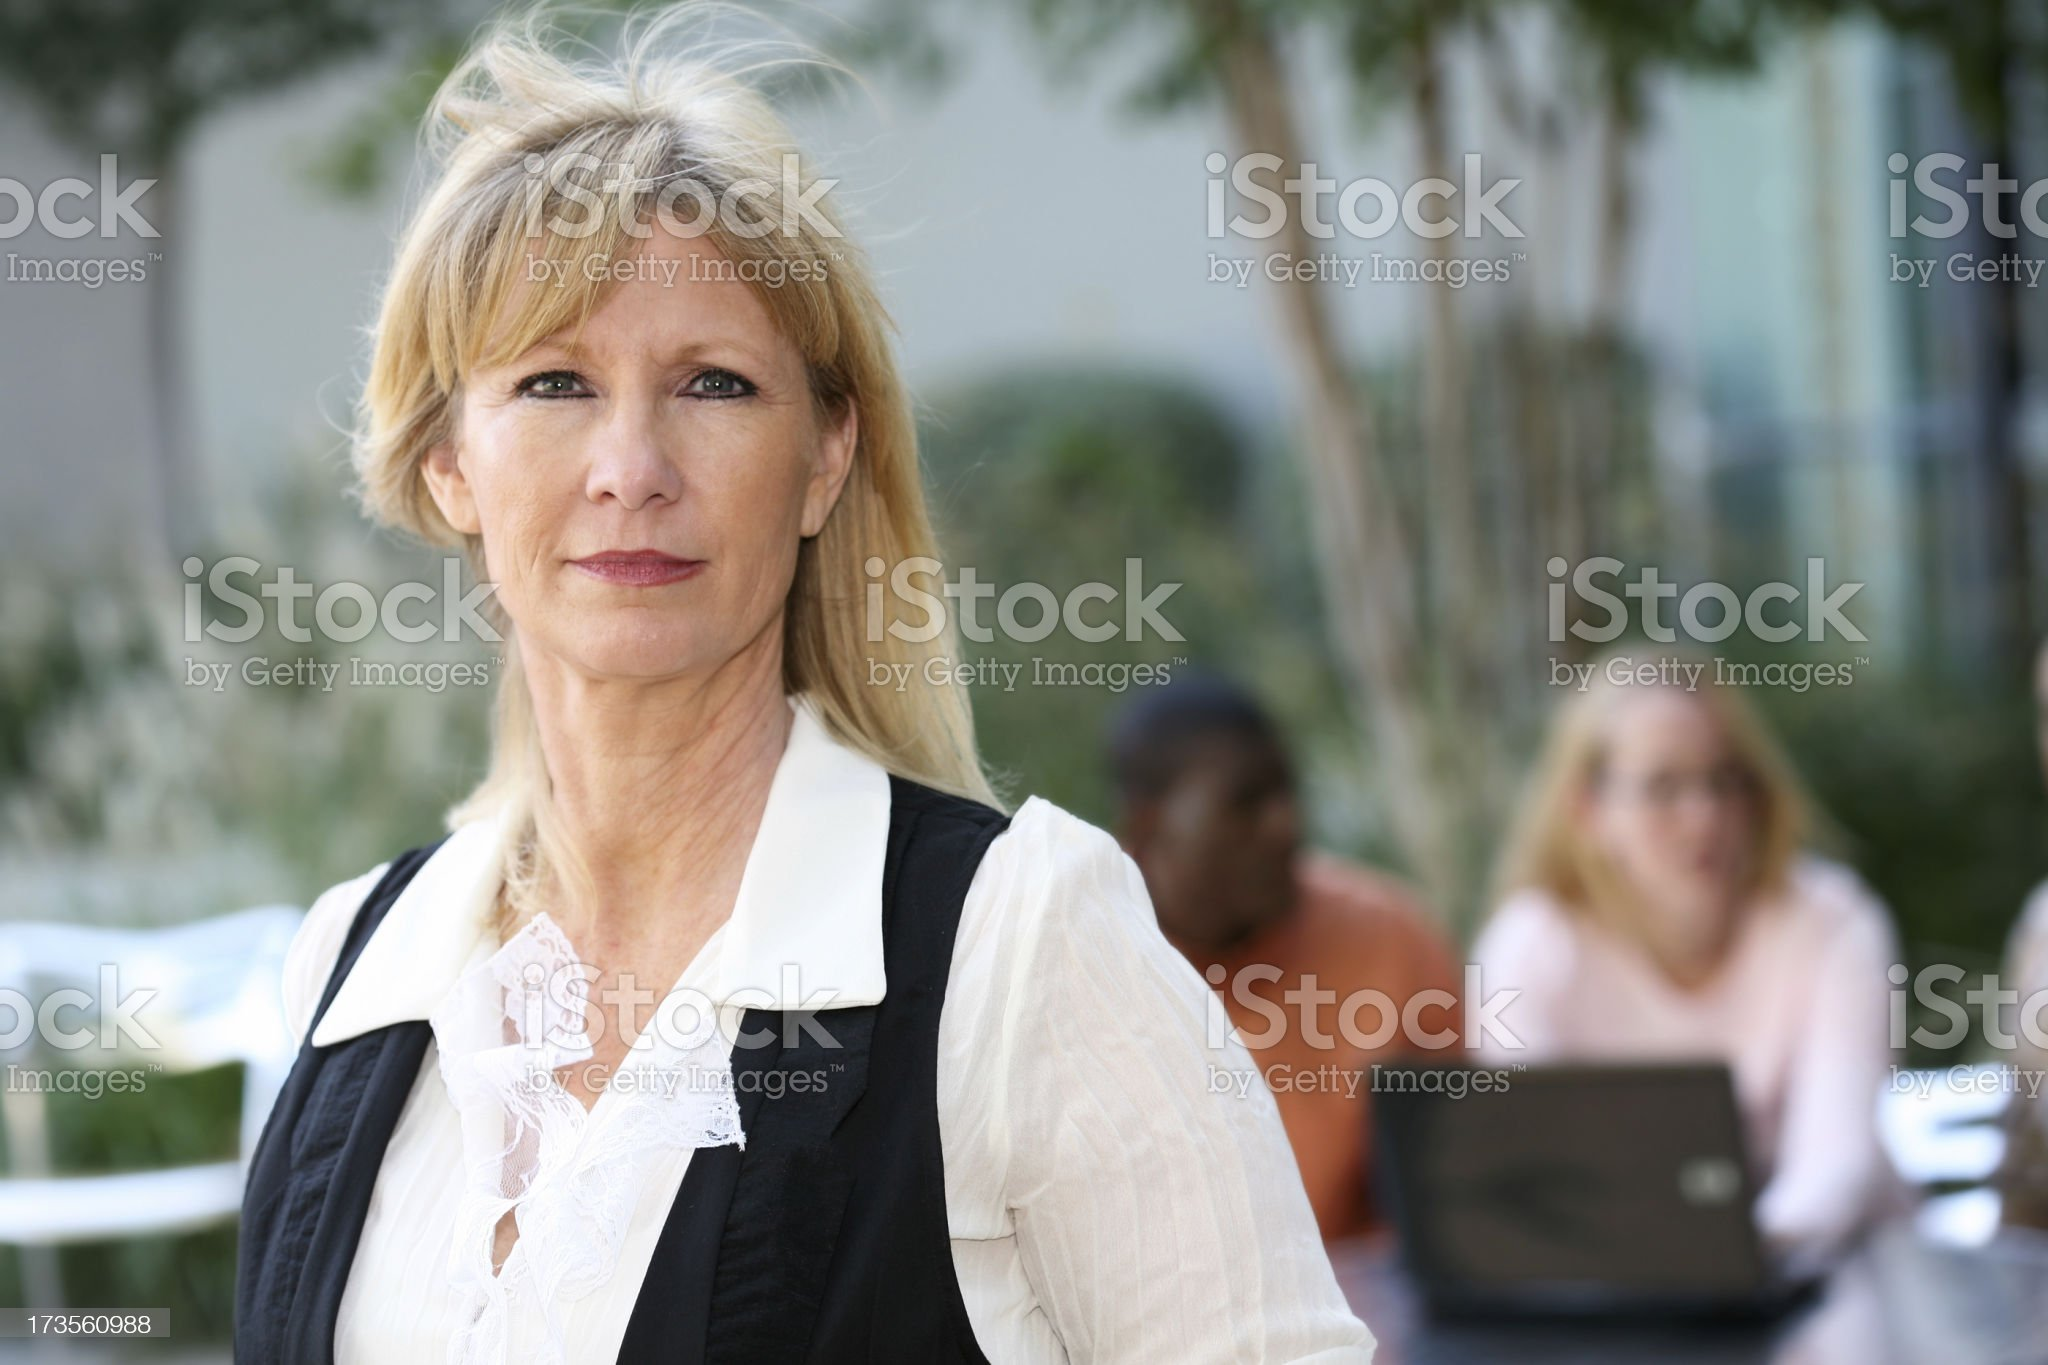 Business Team Leader Stands in Front Of Her Co-Workers royalty-free stock photo